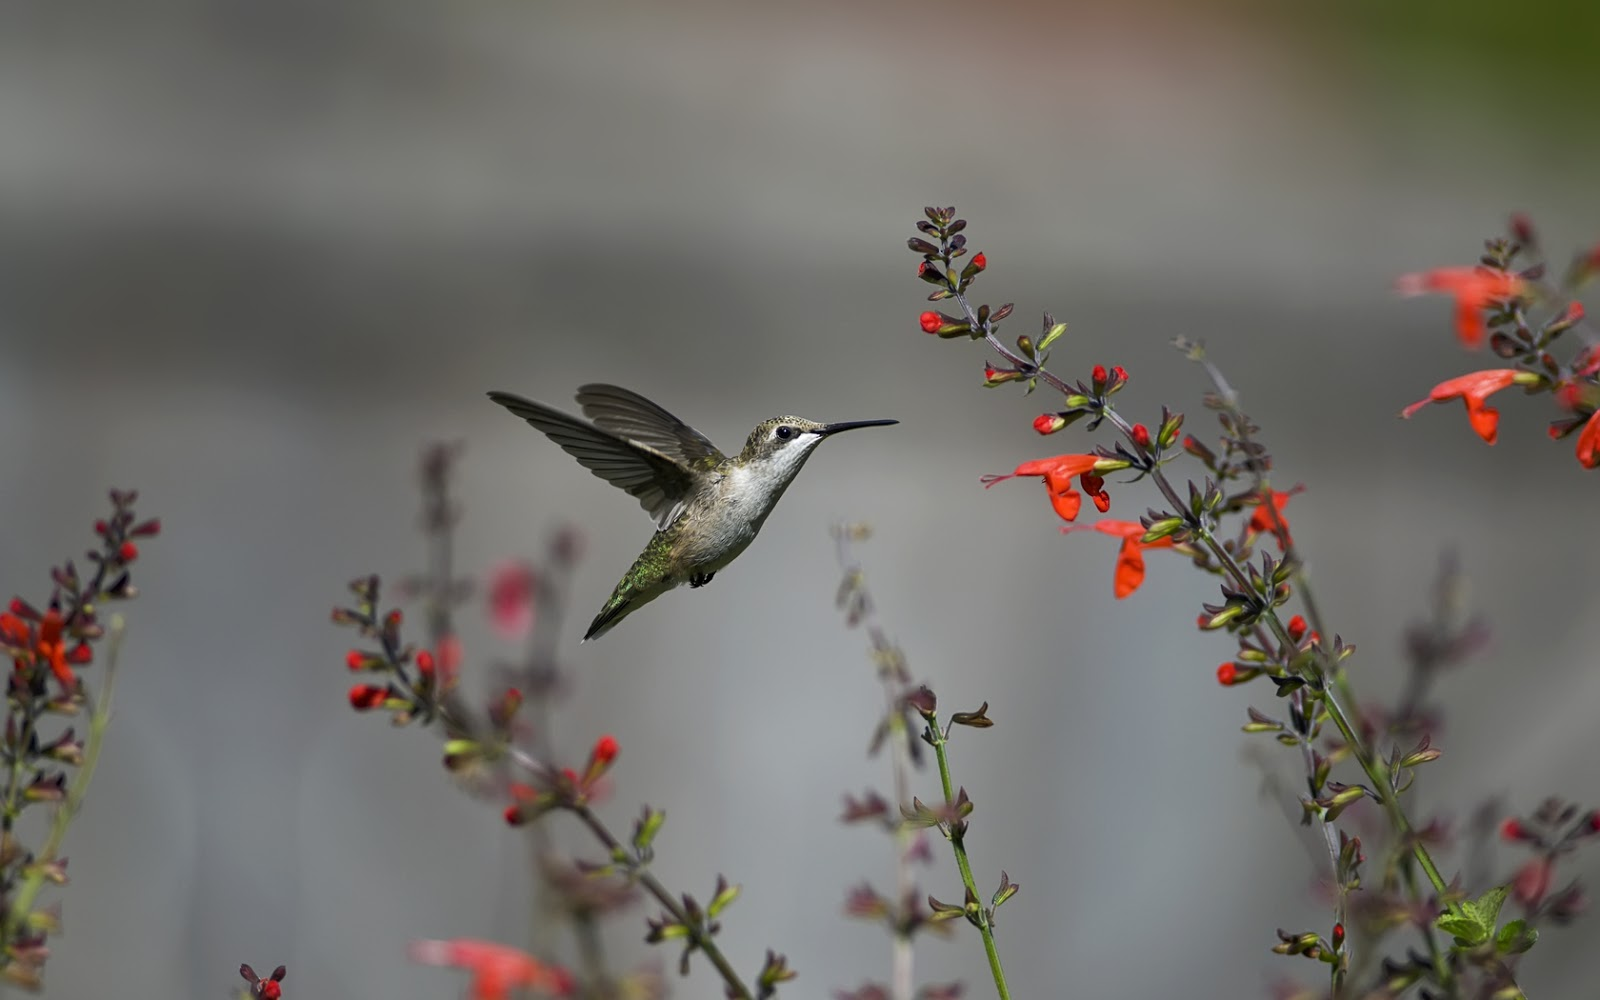 http://3.bp.blogspot.com/-D9vjeitfd_A/UJqptzErGMI/AAAAAAAAF4k/BcMr9FqtS0s/s1600/Little-Hummingbird-Flowers-HD-Wallpaper.jpg